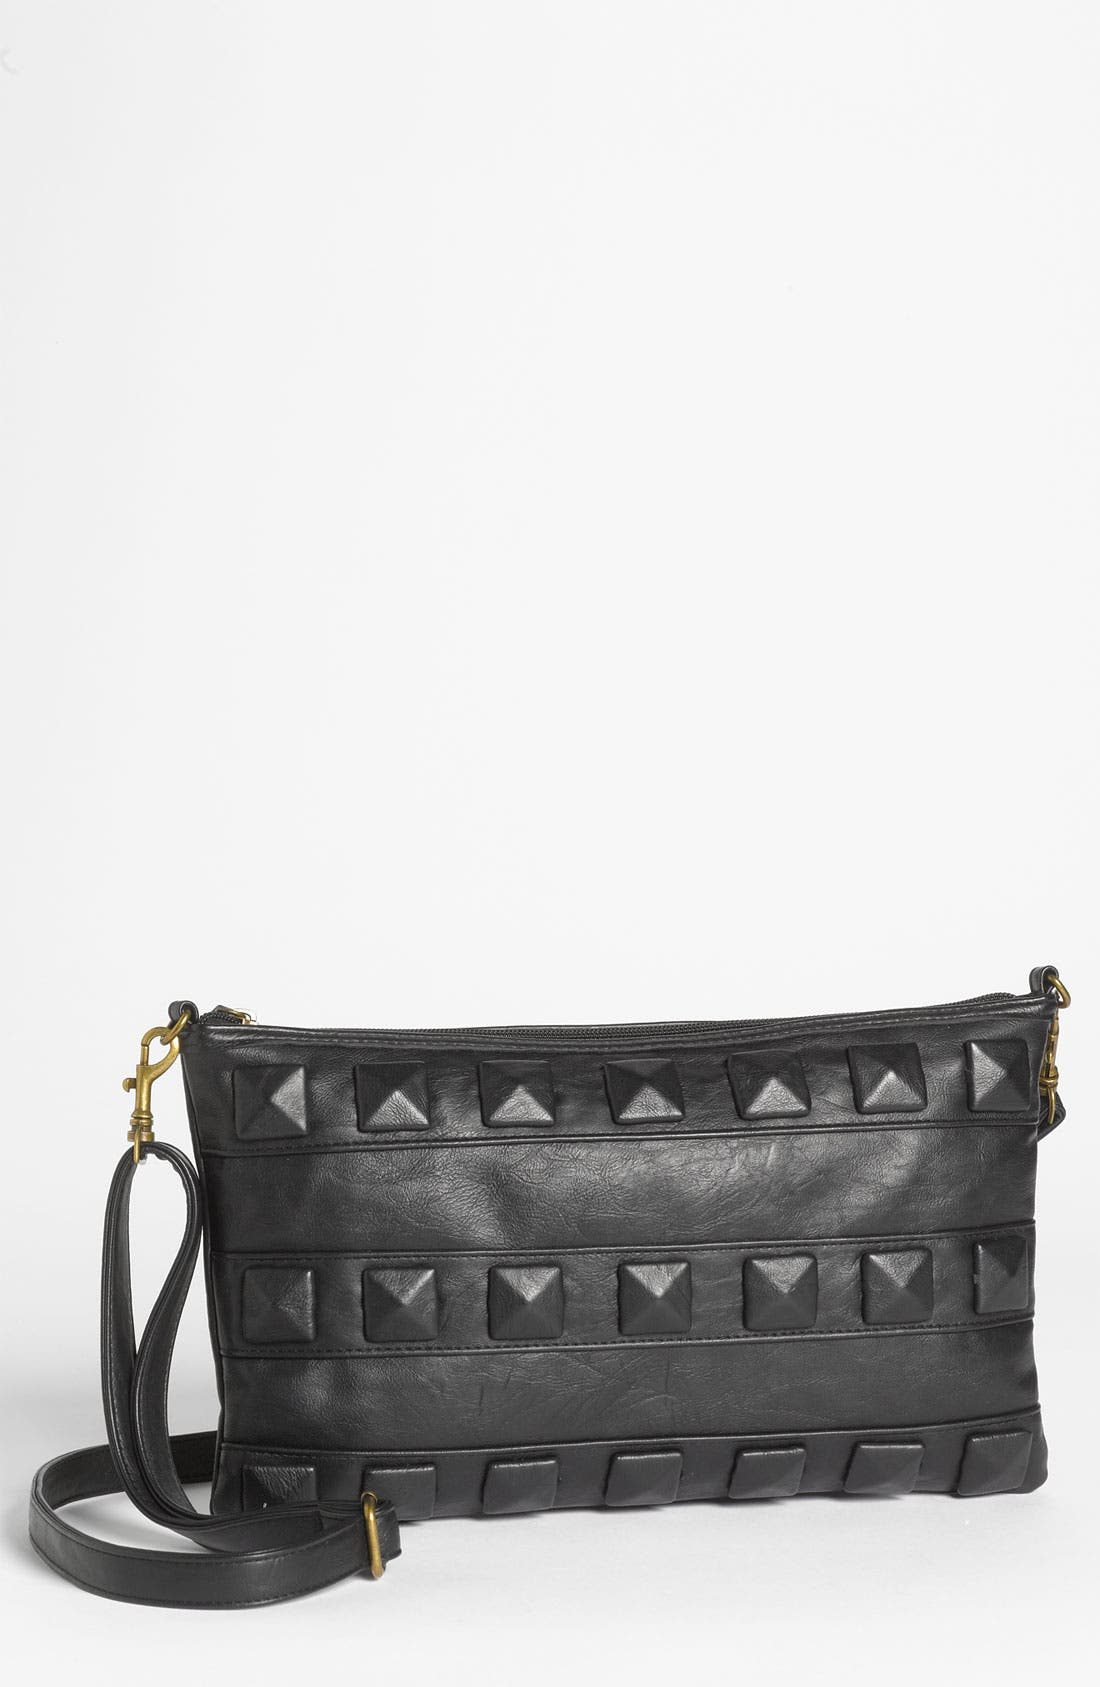 Alternate Image 1 Selected - Lulu Studded Faux Leather Crossbody Bag